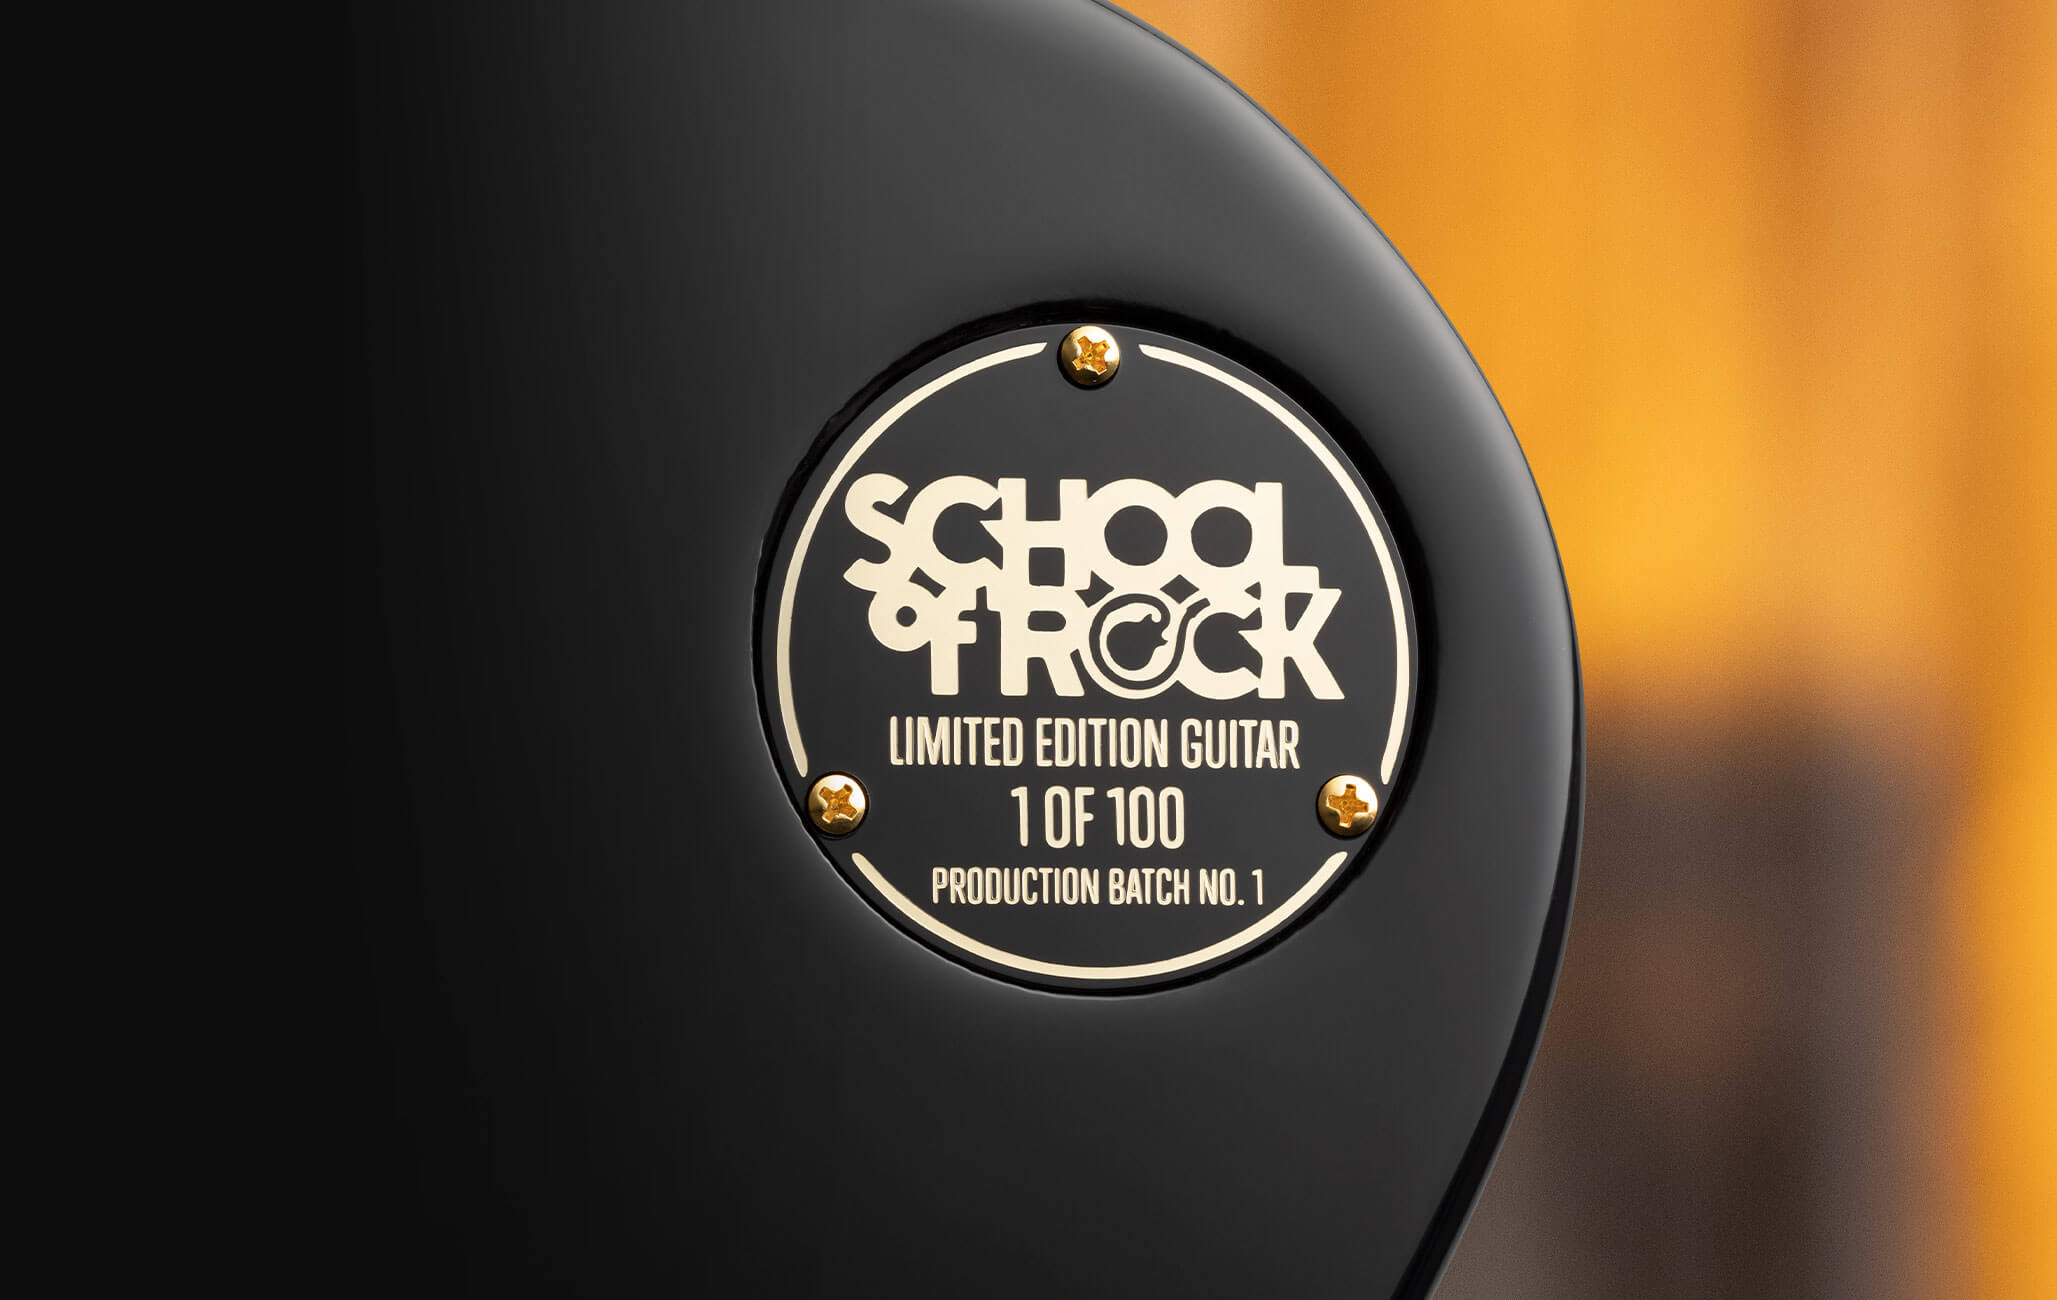 Limited Edition Gibson Les Paul for School of Rock